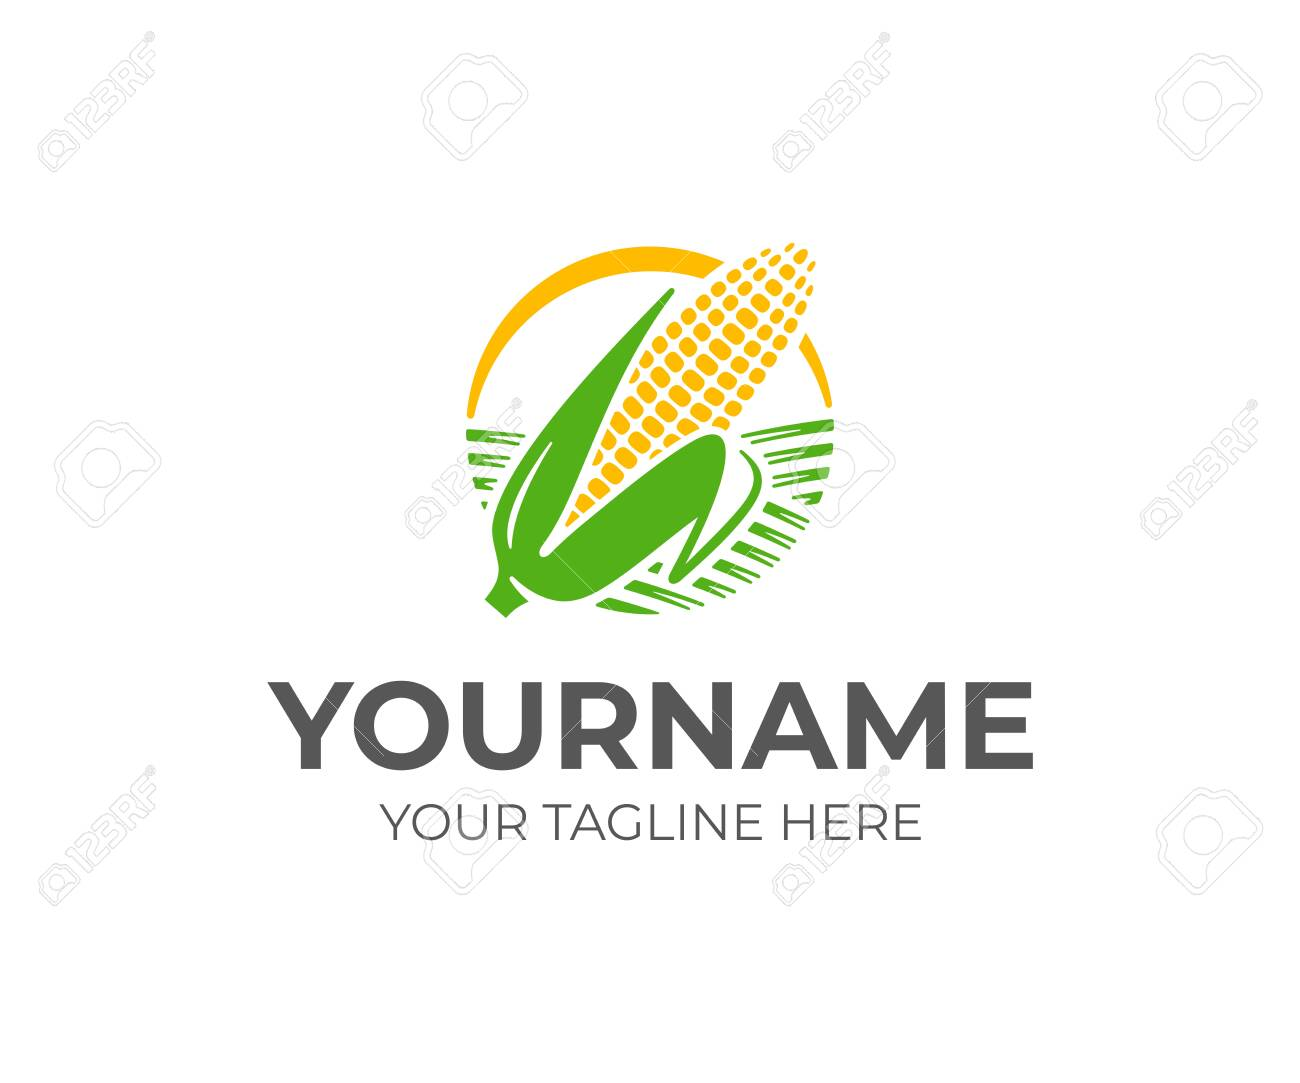 ear of corn logo design maize crop vector design corn farming royalty free cliparts vectors and stock illustration image 122375550 123rf com